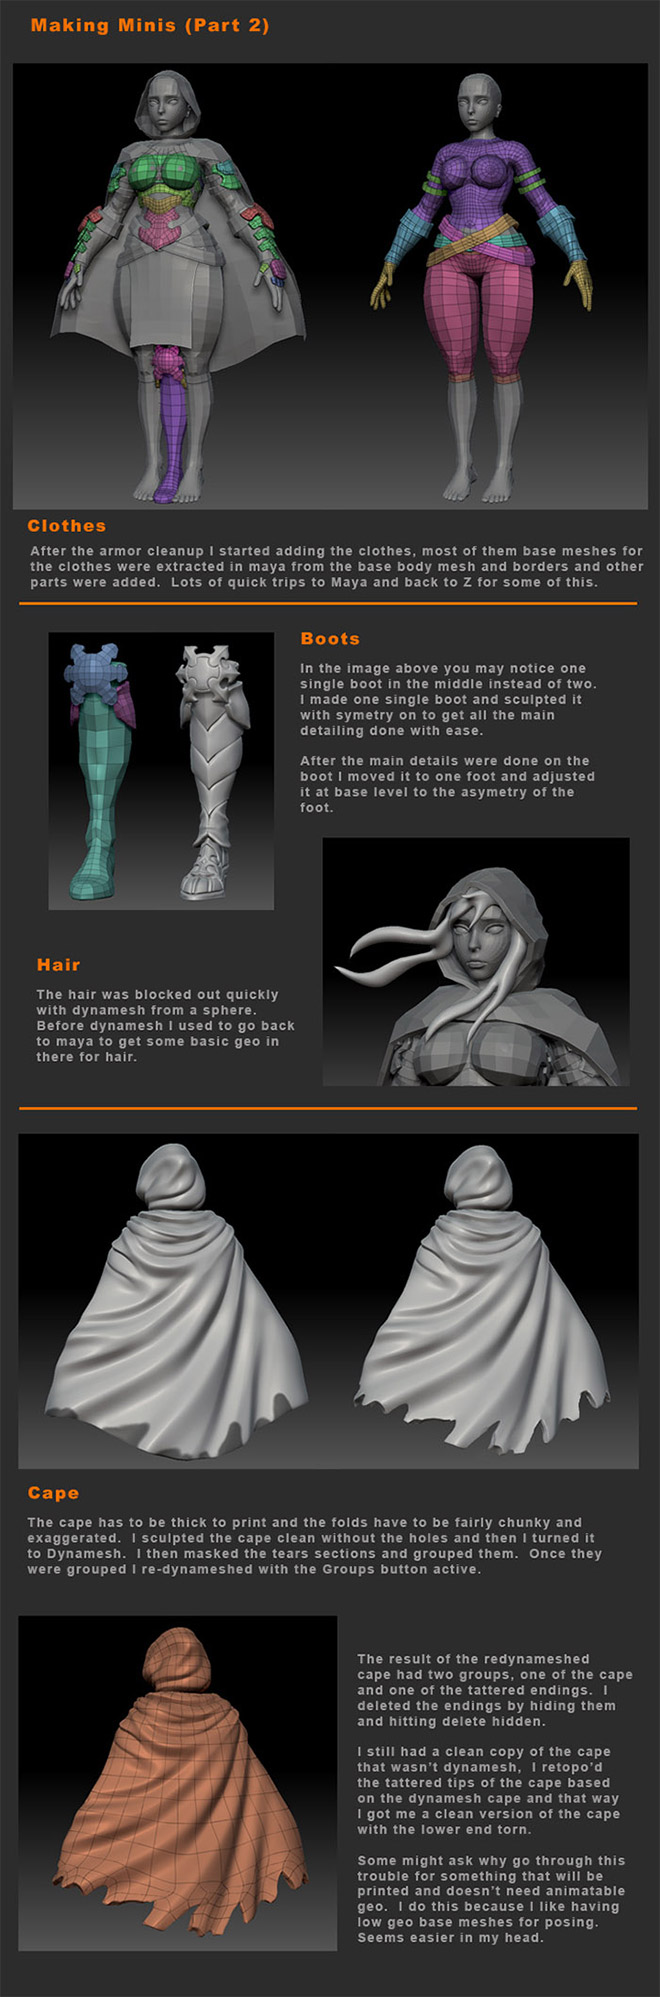 Making-of-Kingdom-Death-Minis-by-Hector-Moran2